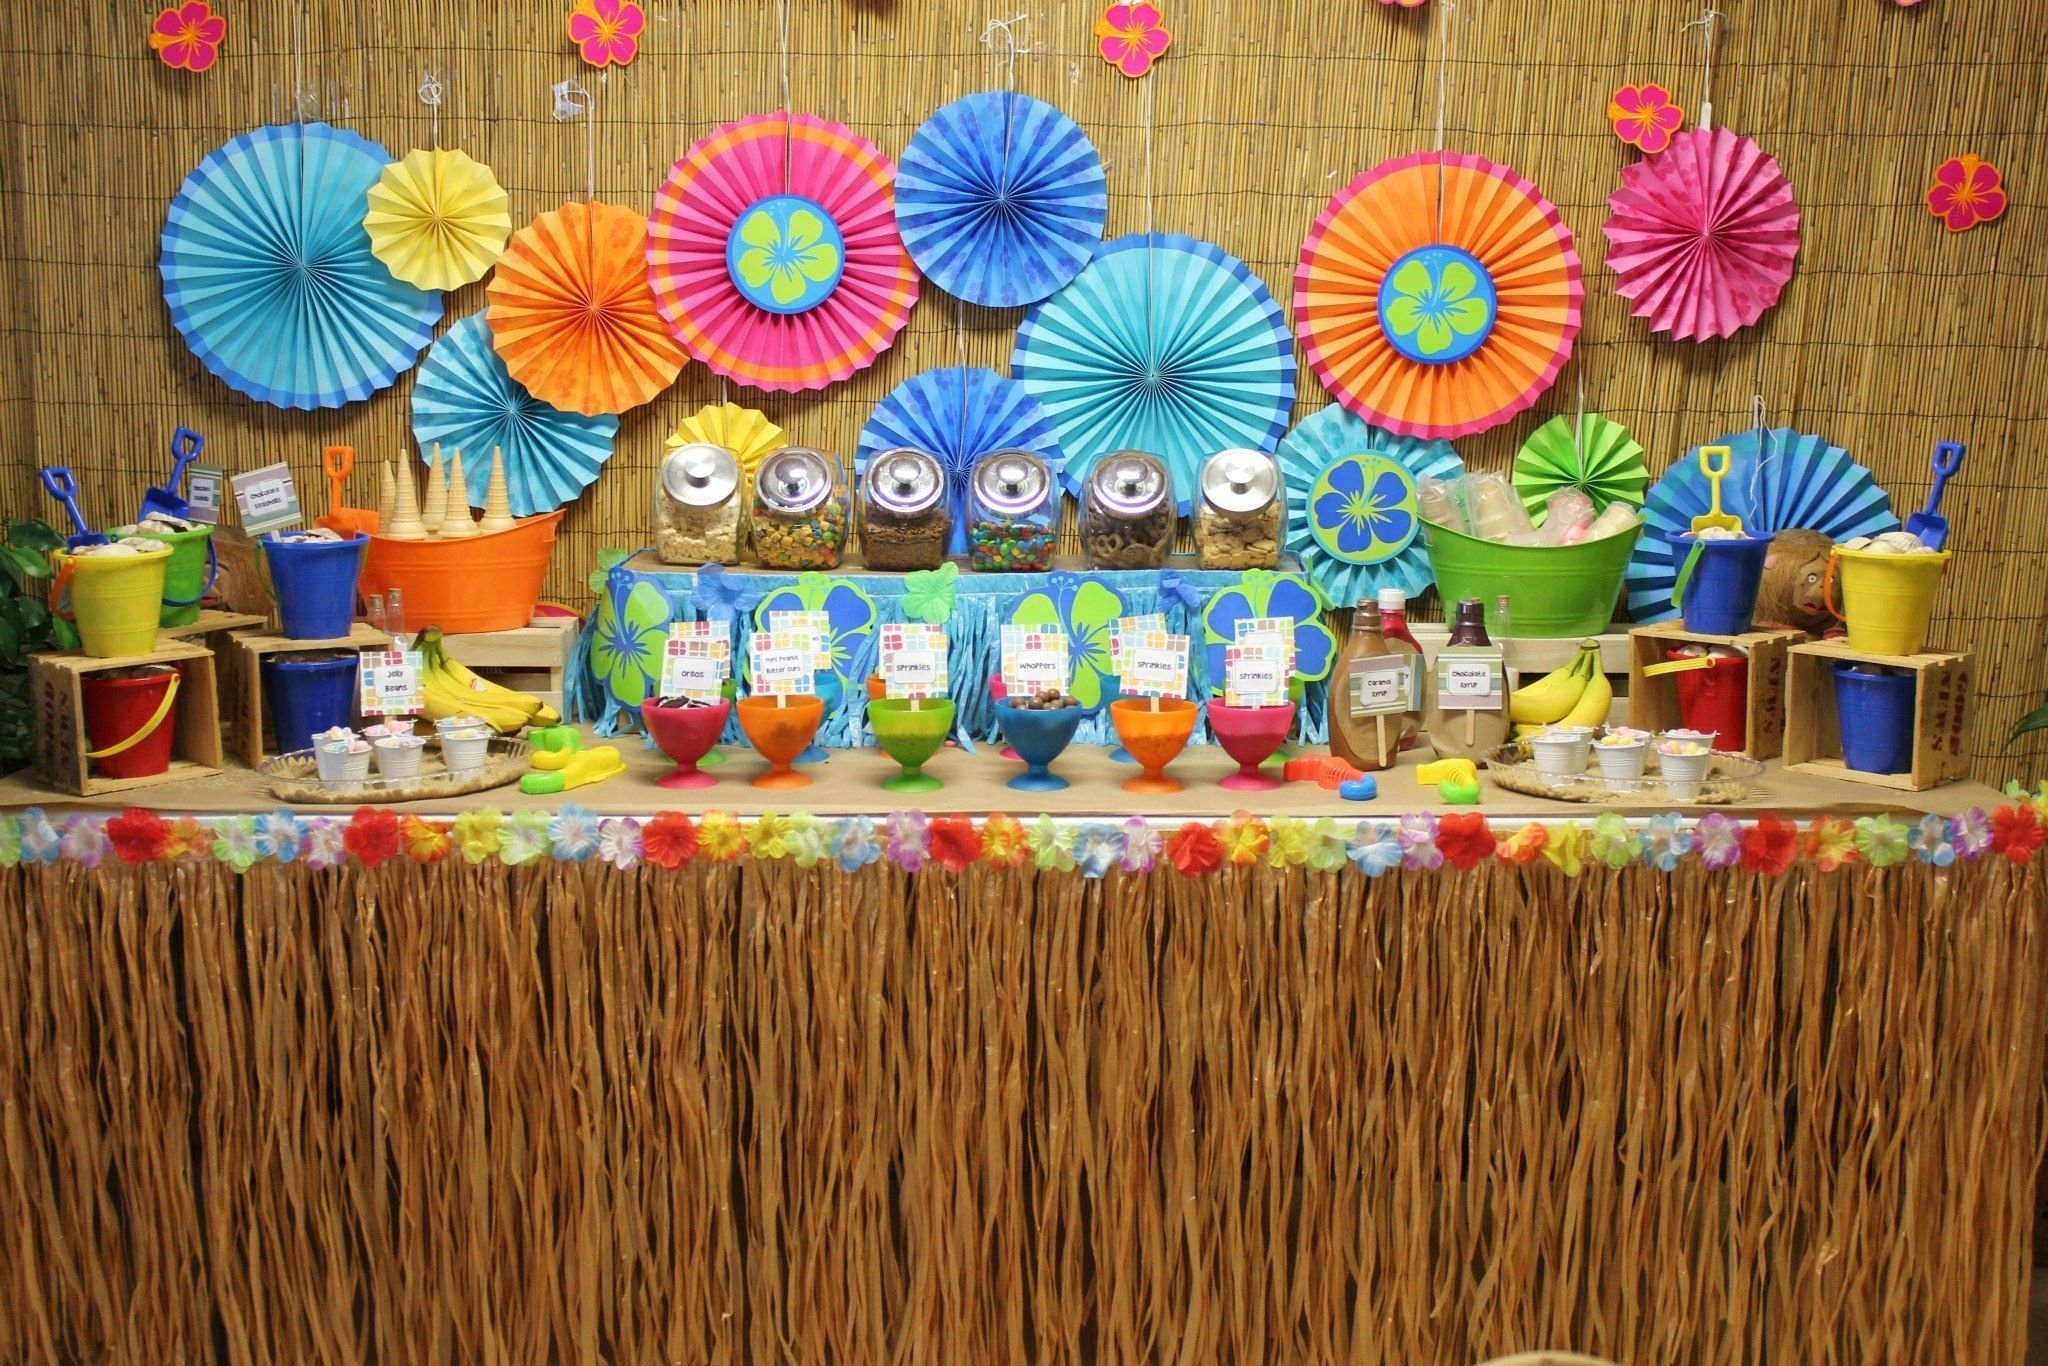 10 Attractive Ideas For A Luau Party luau birthday party ideas share your favorite ice cream sundae 2 2020